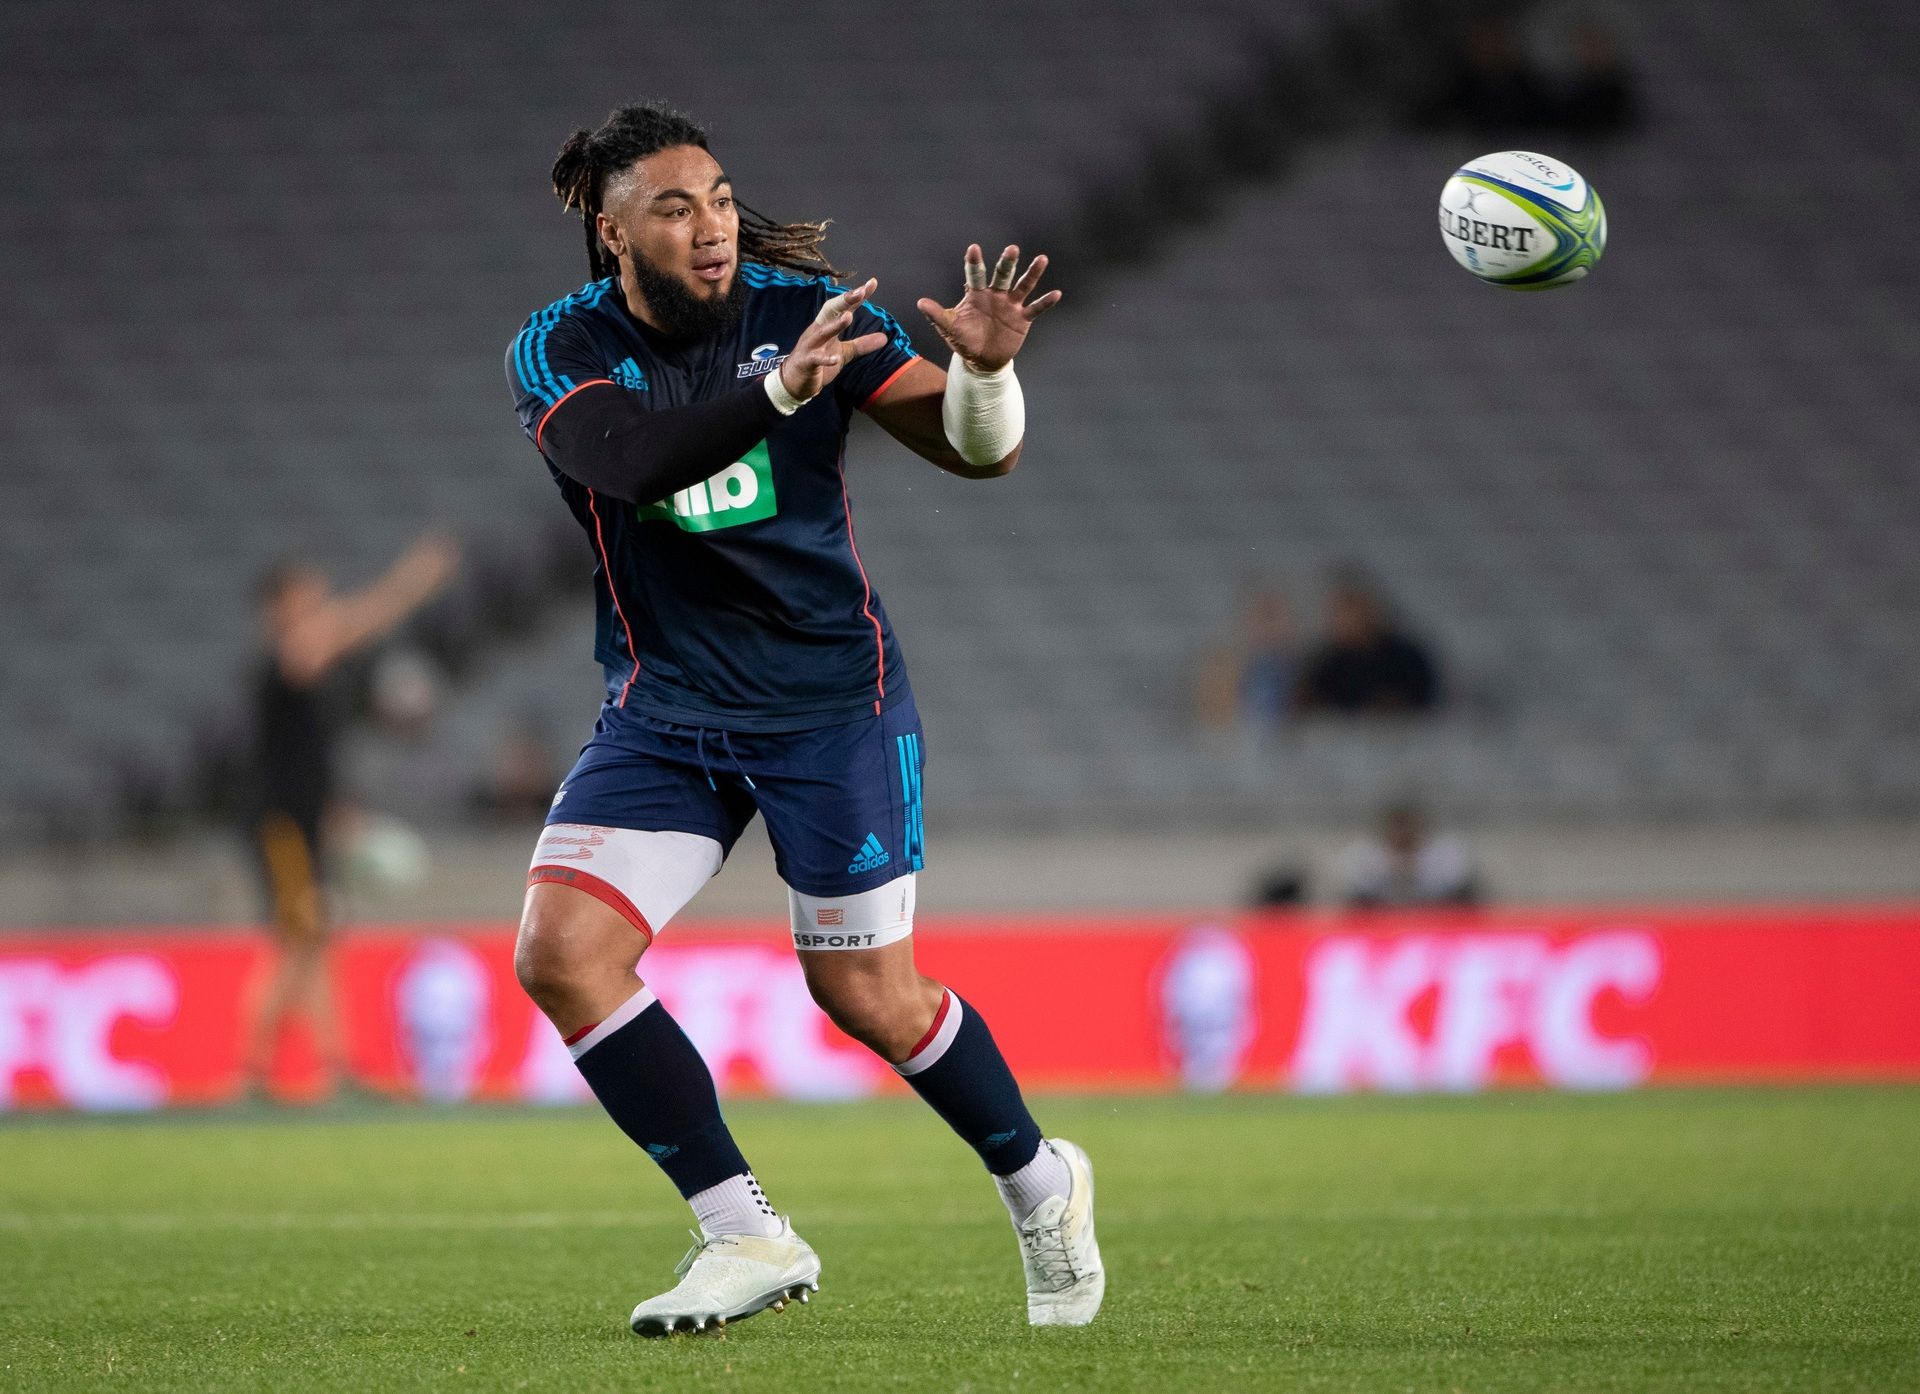 Super Rugby: Veteran Ma'a Nonu shows way as Blues steel themselves for Crusaders